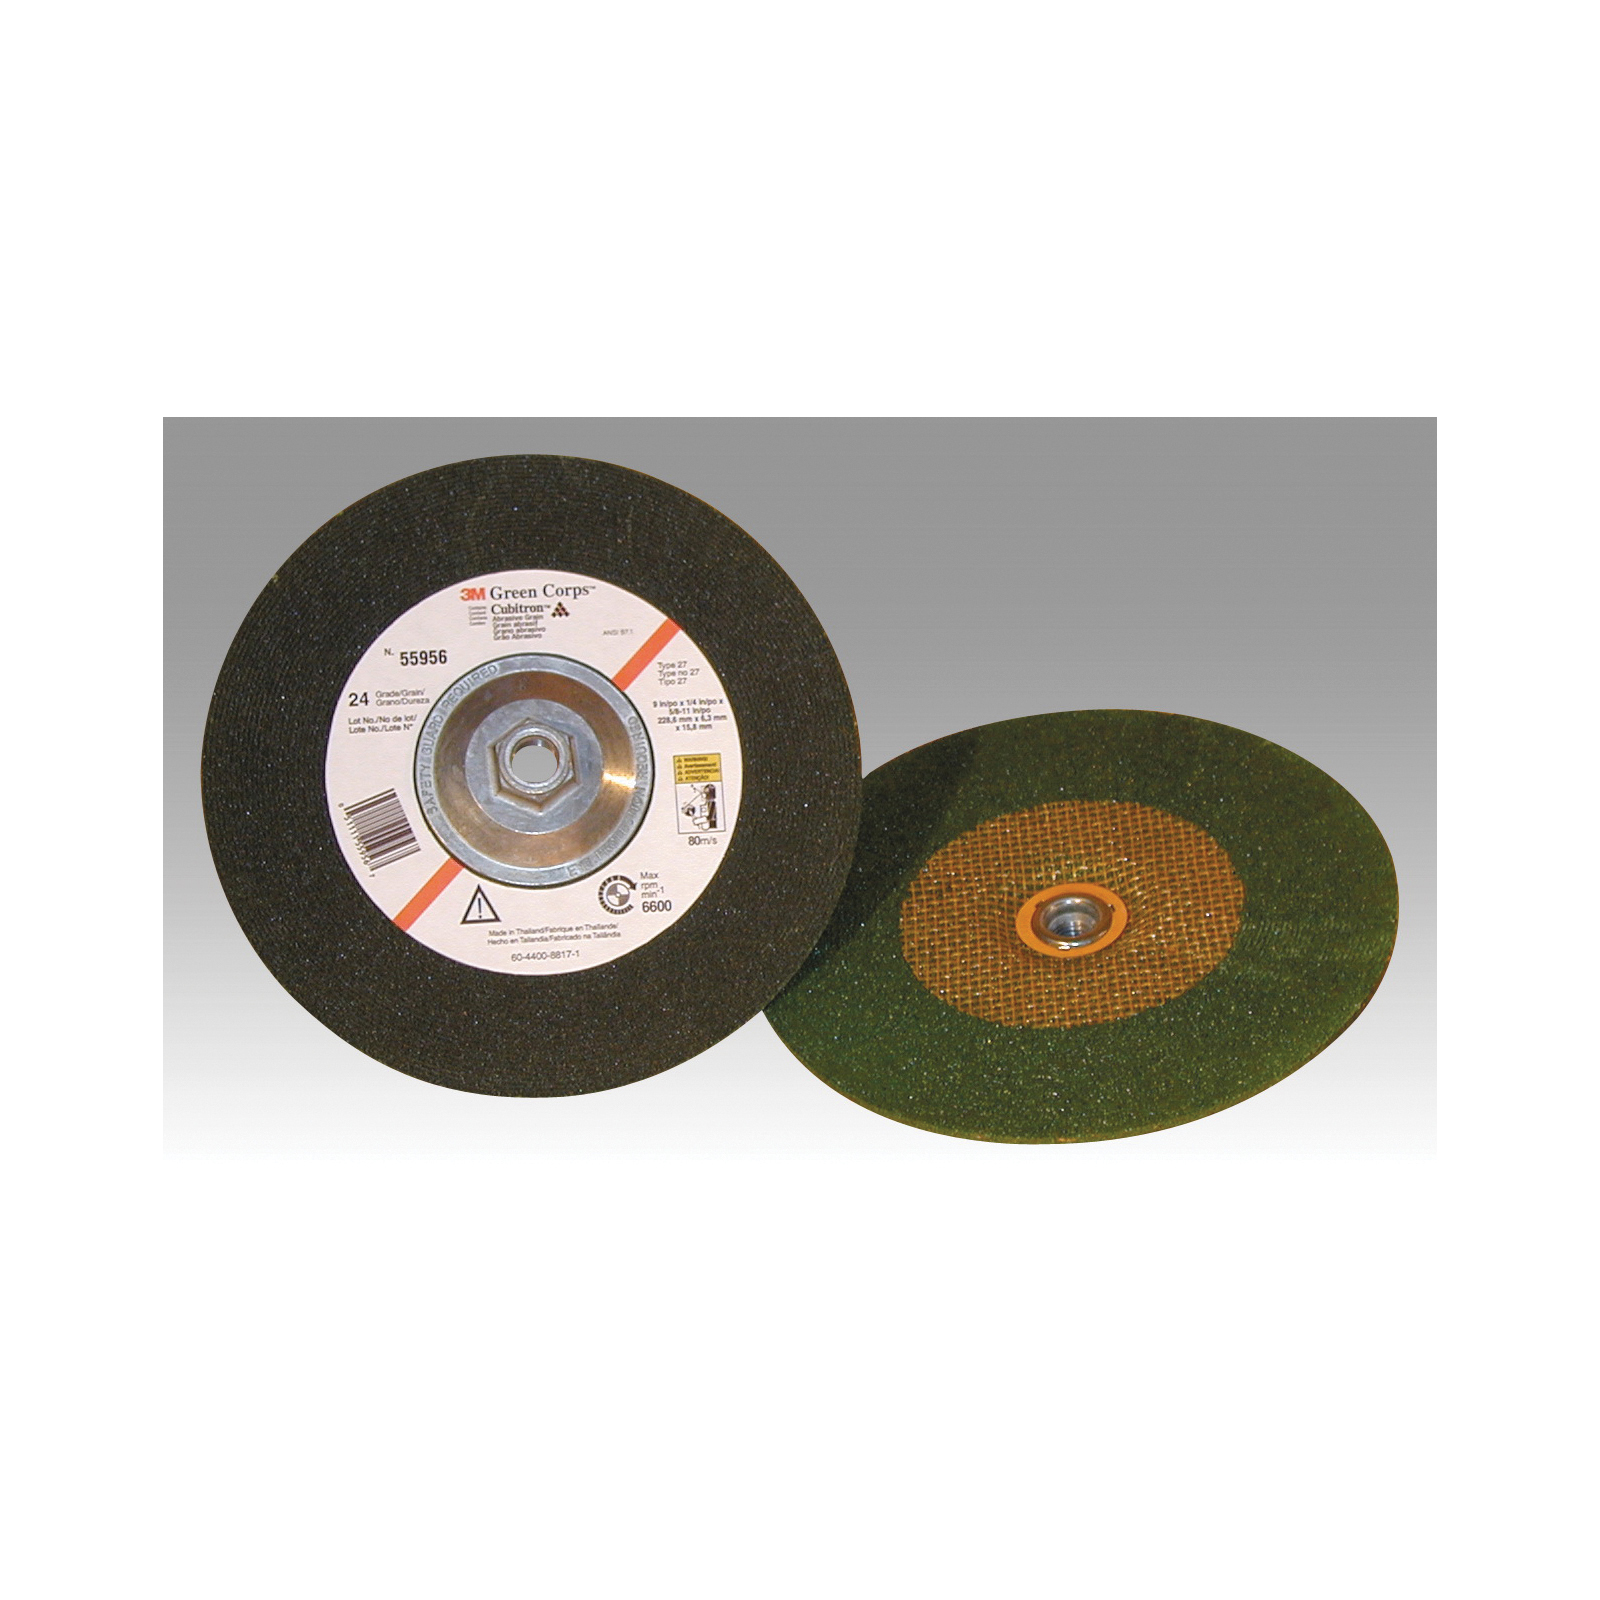 Cubitron™ II 046719-82279 Type 27 Cut-Off Wheel, 4-1/2 in Dia x 1/8 in THK, 7/8 in Center Hole, 36 Grit, Precision Shaped Ceramic Abrasive